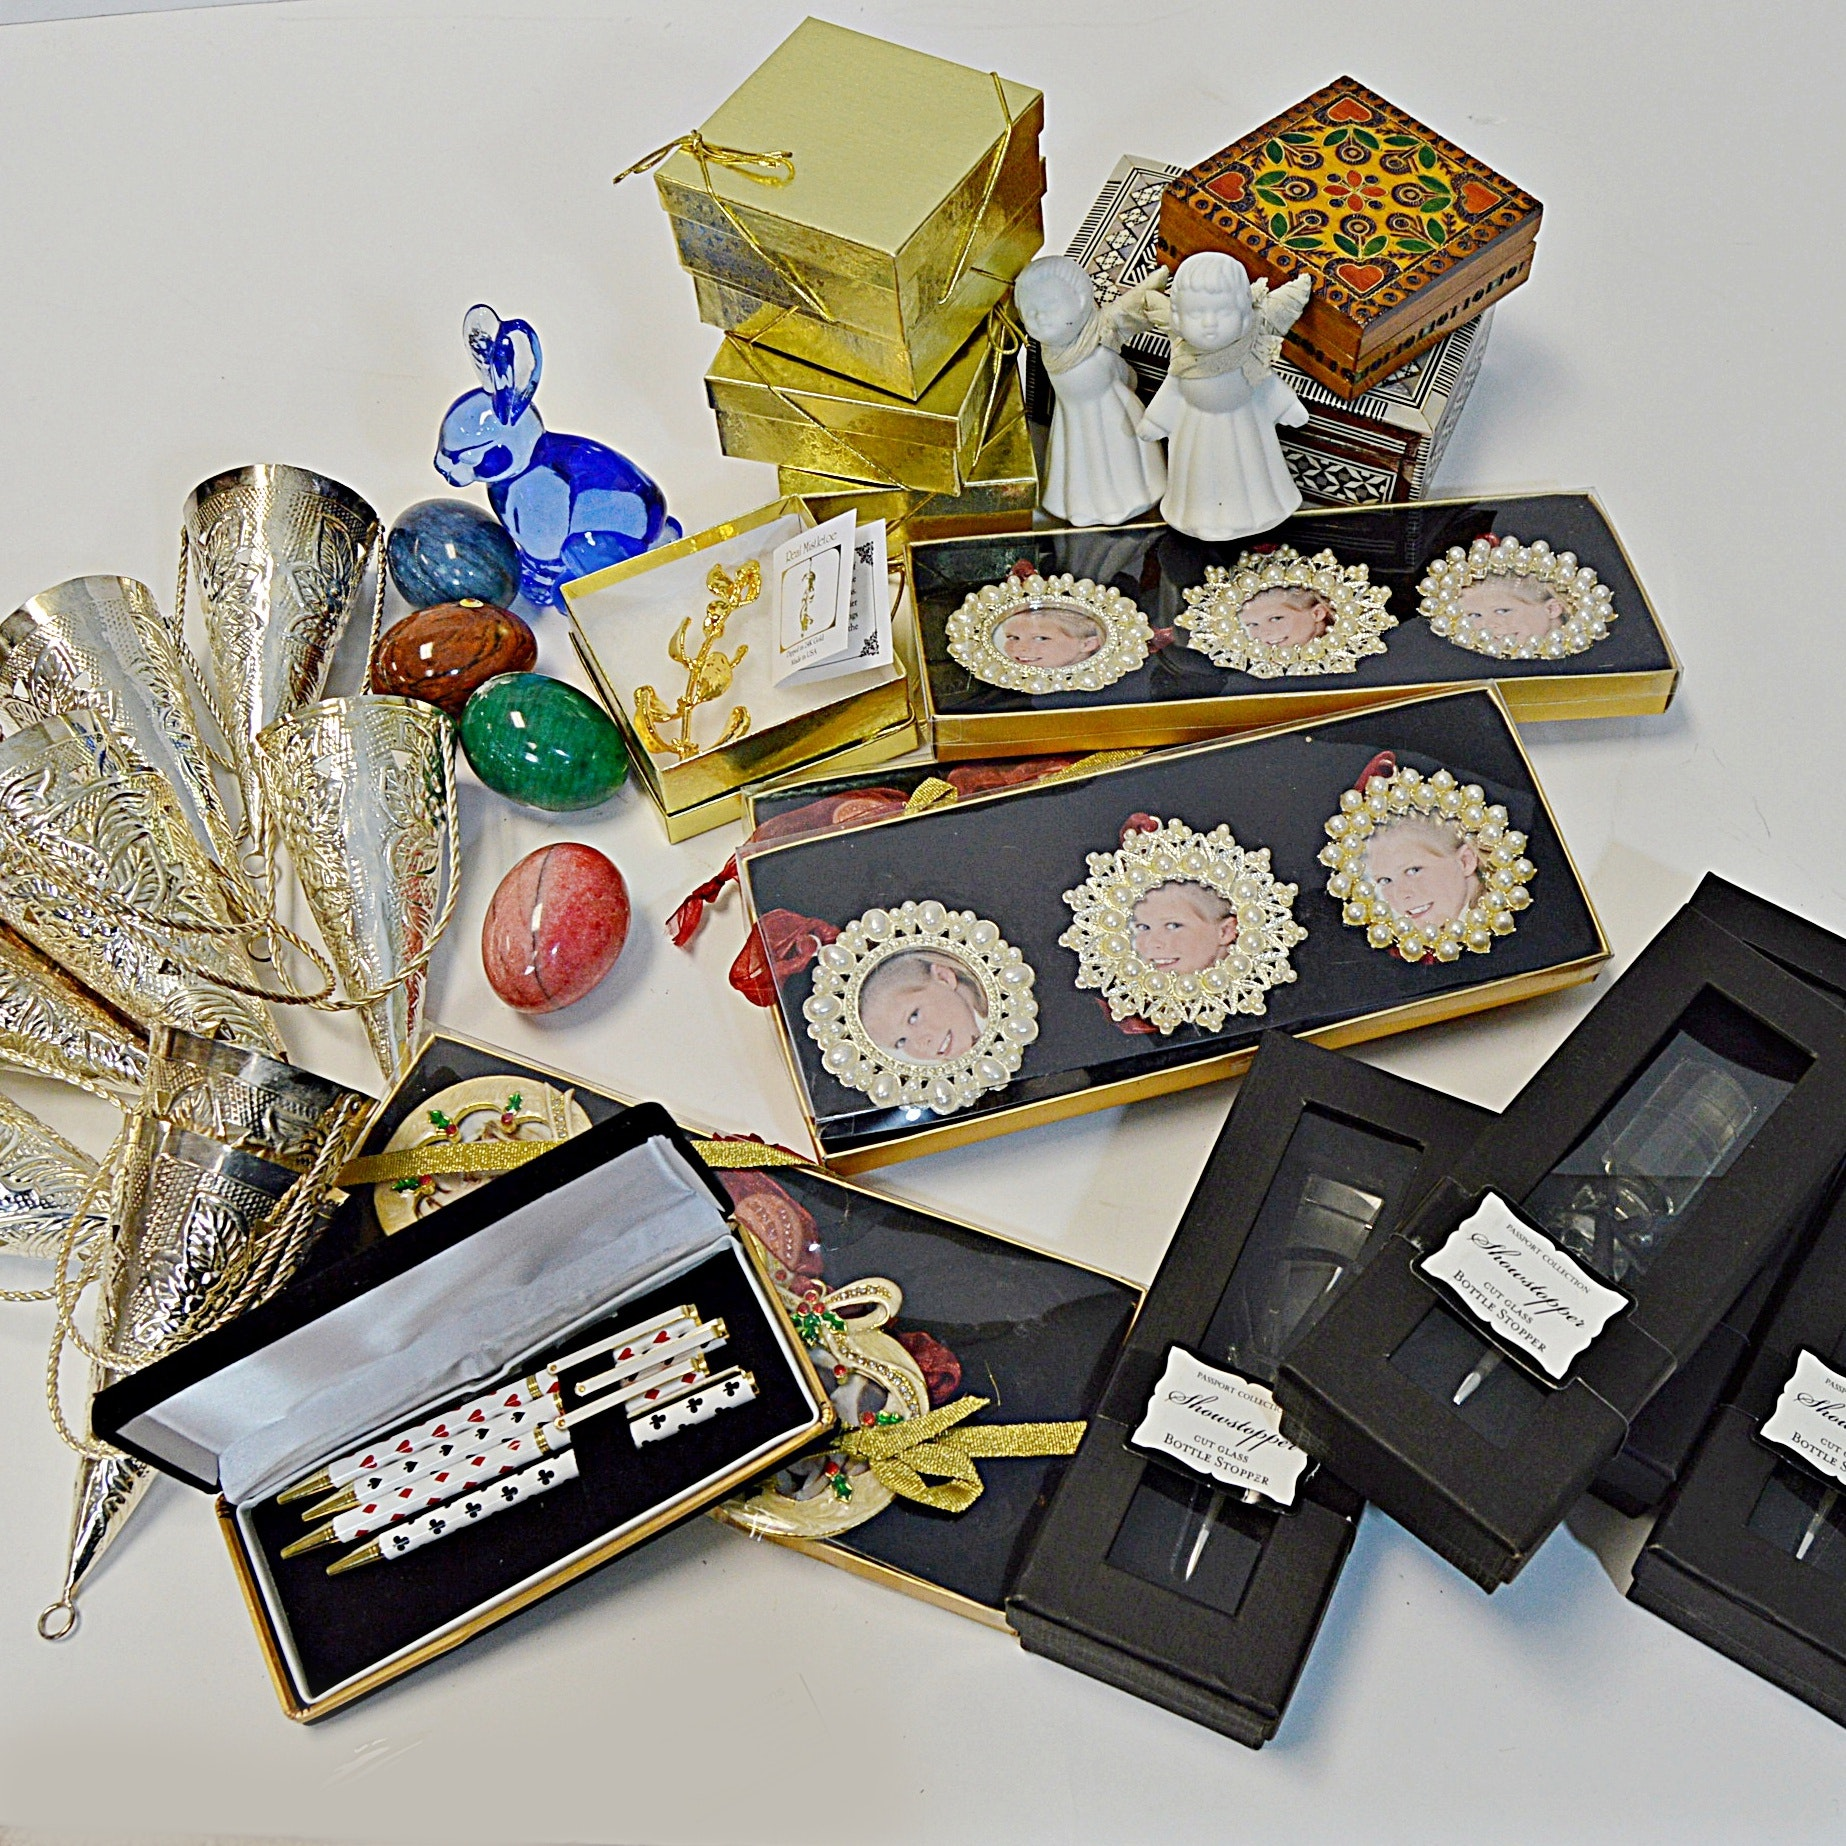 Holiday Decor and Collectibles with 24K Mistletoe, Tussy-Mussies, Crystal